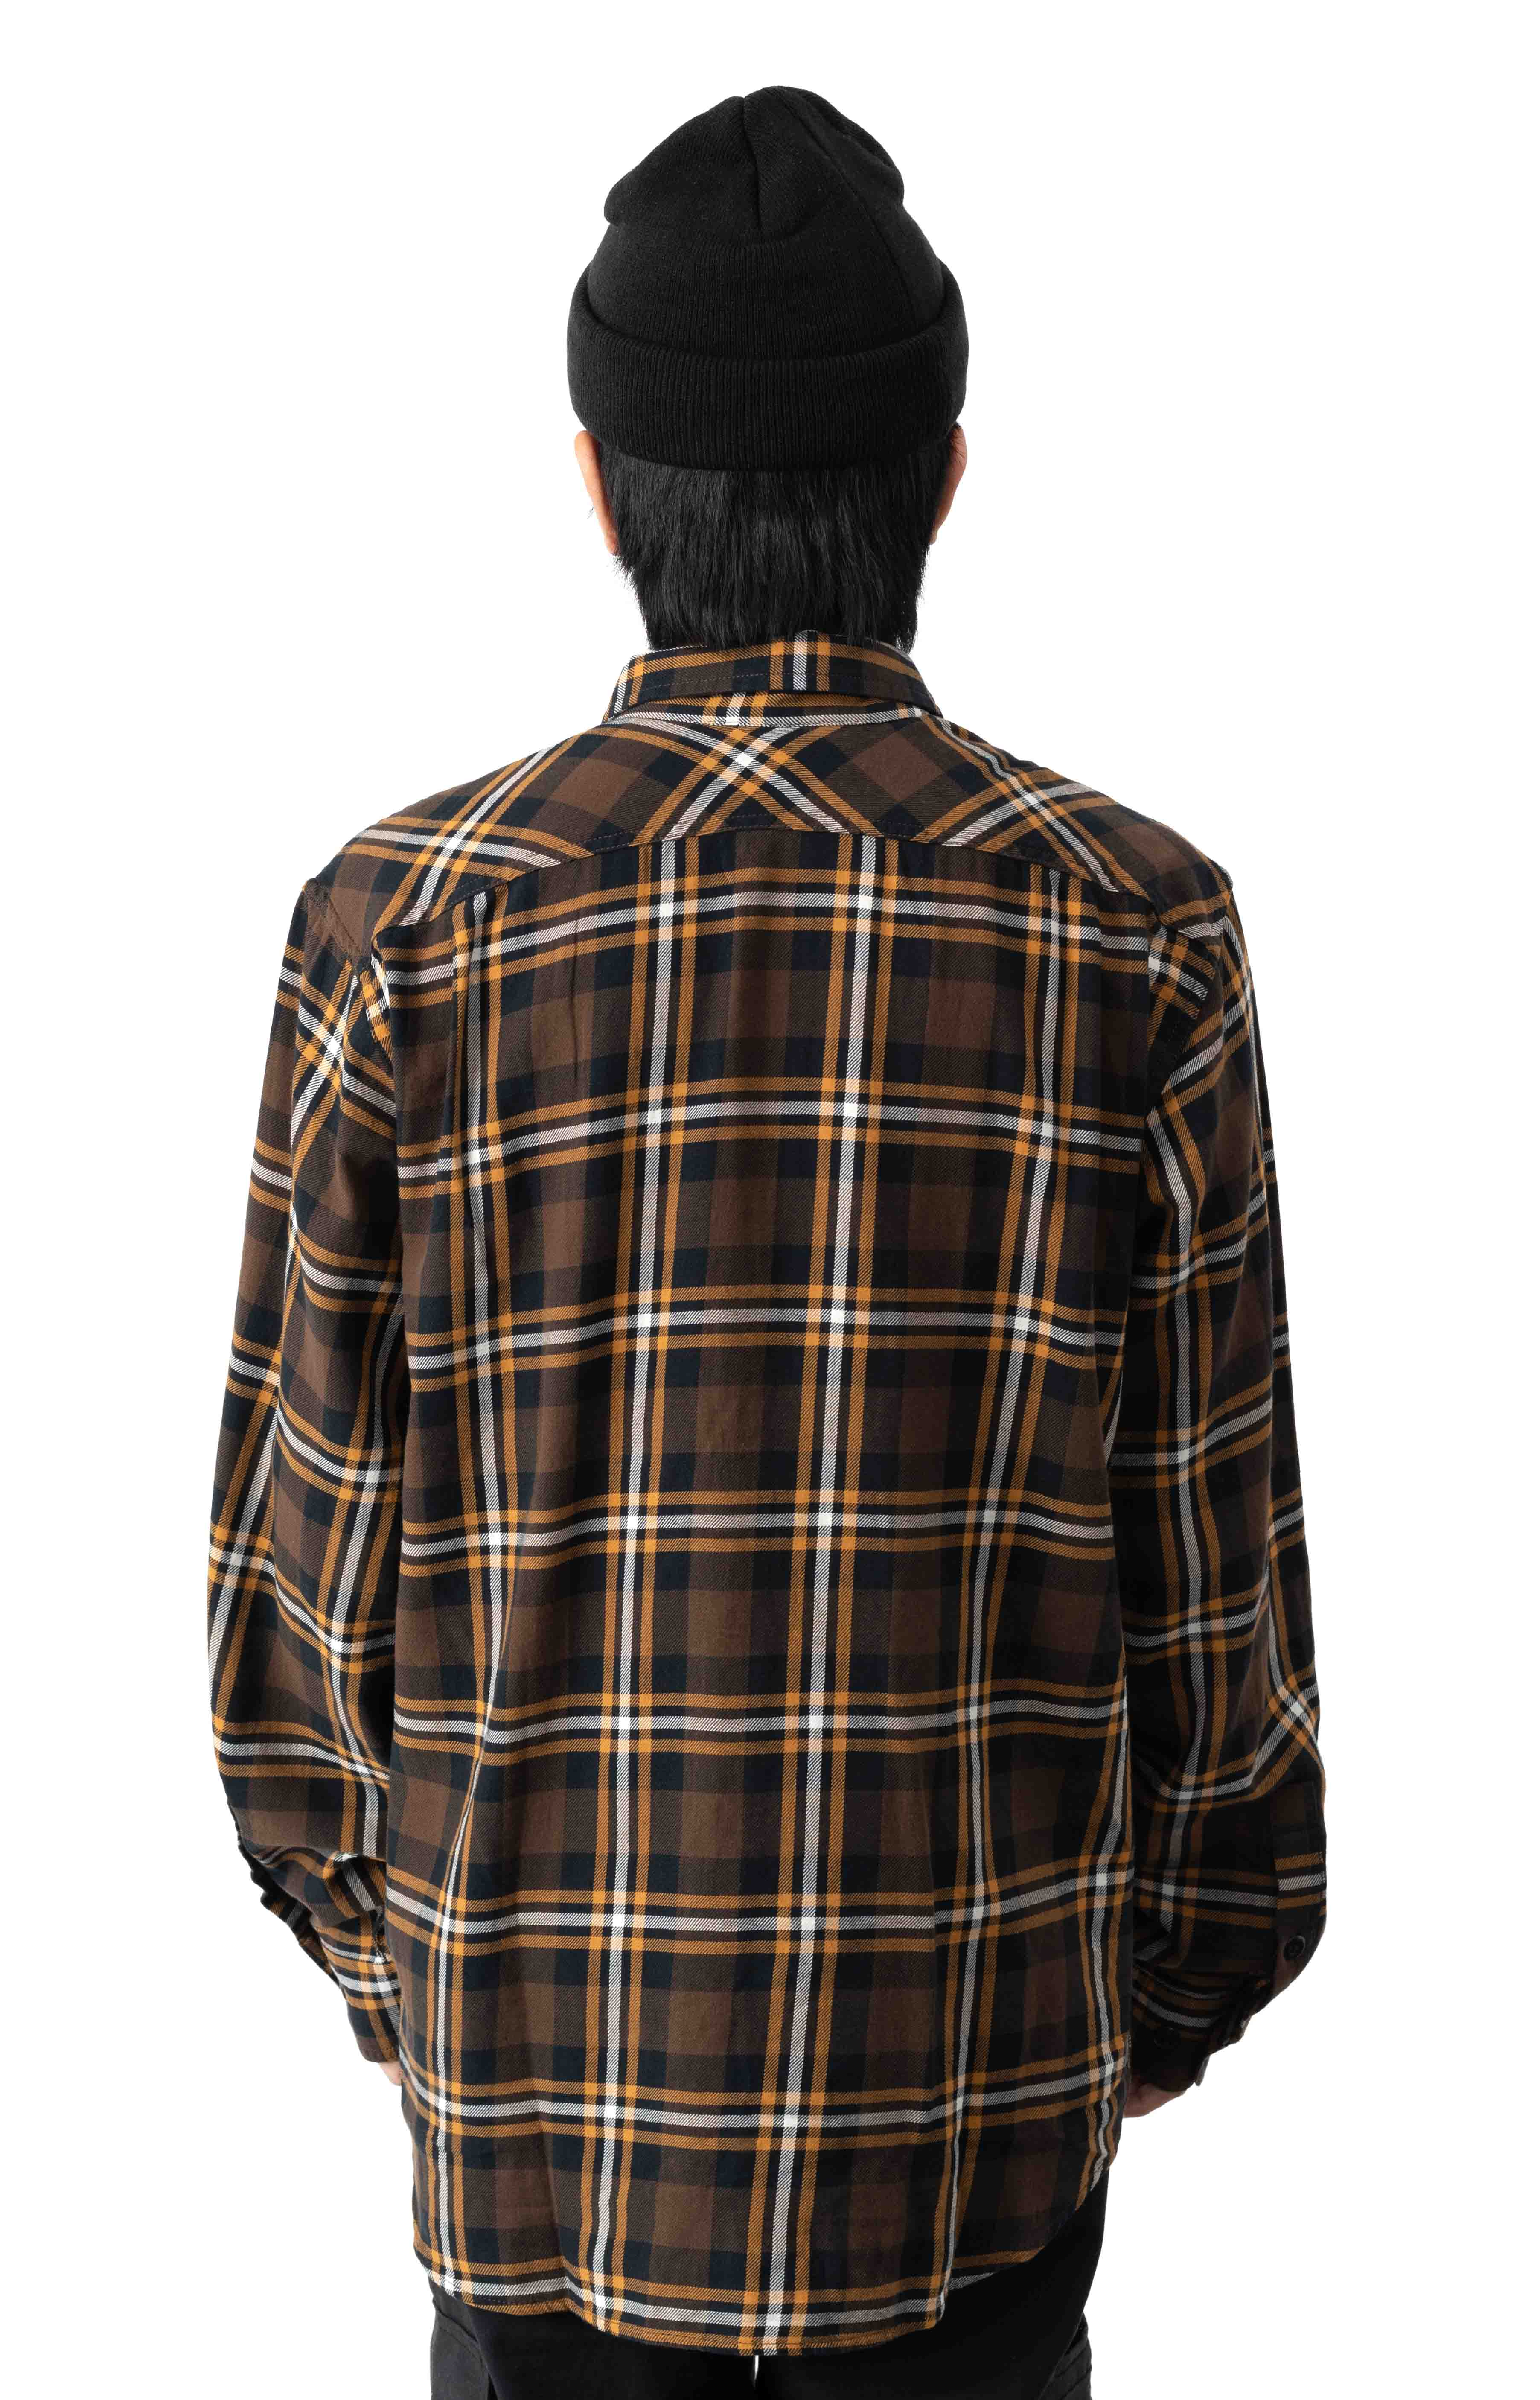 Scout Button-Up Shirt - Brown/Black/Gold 3